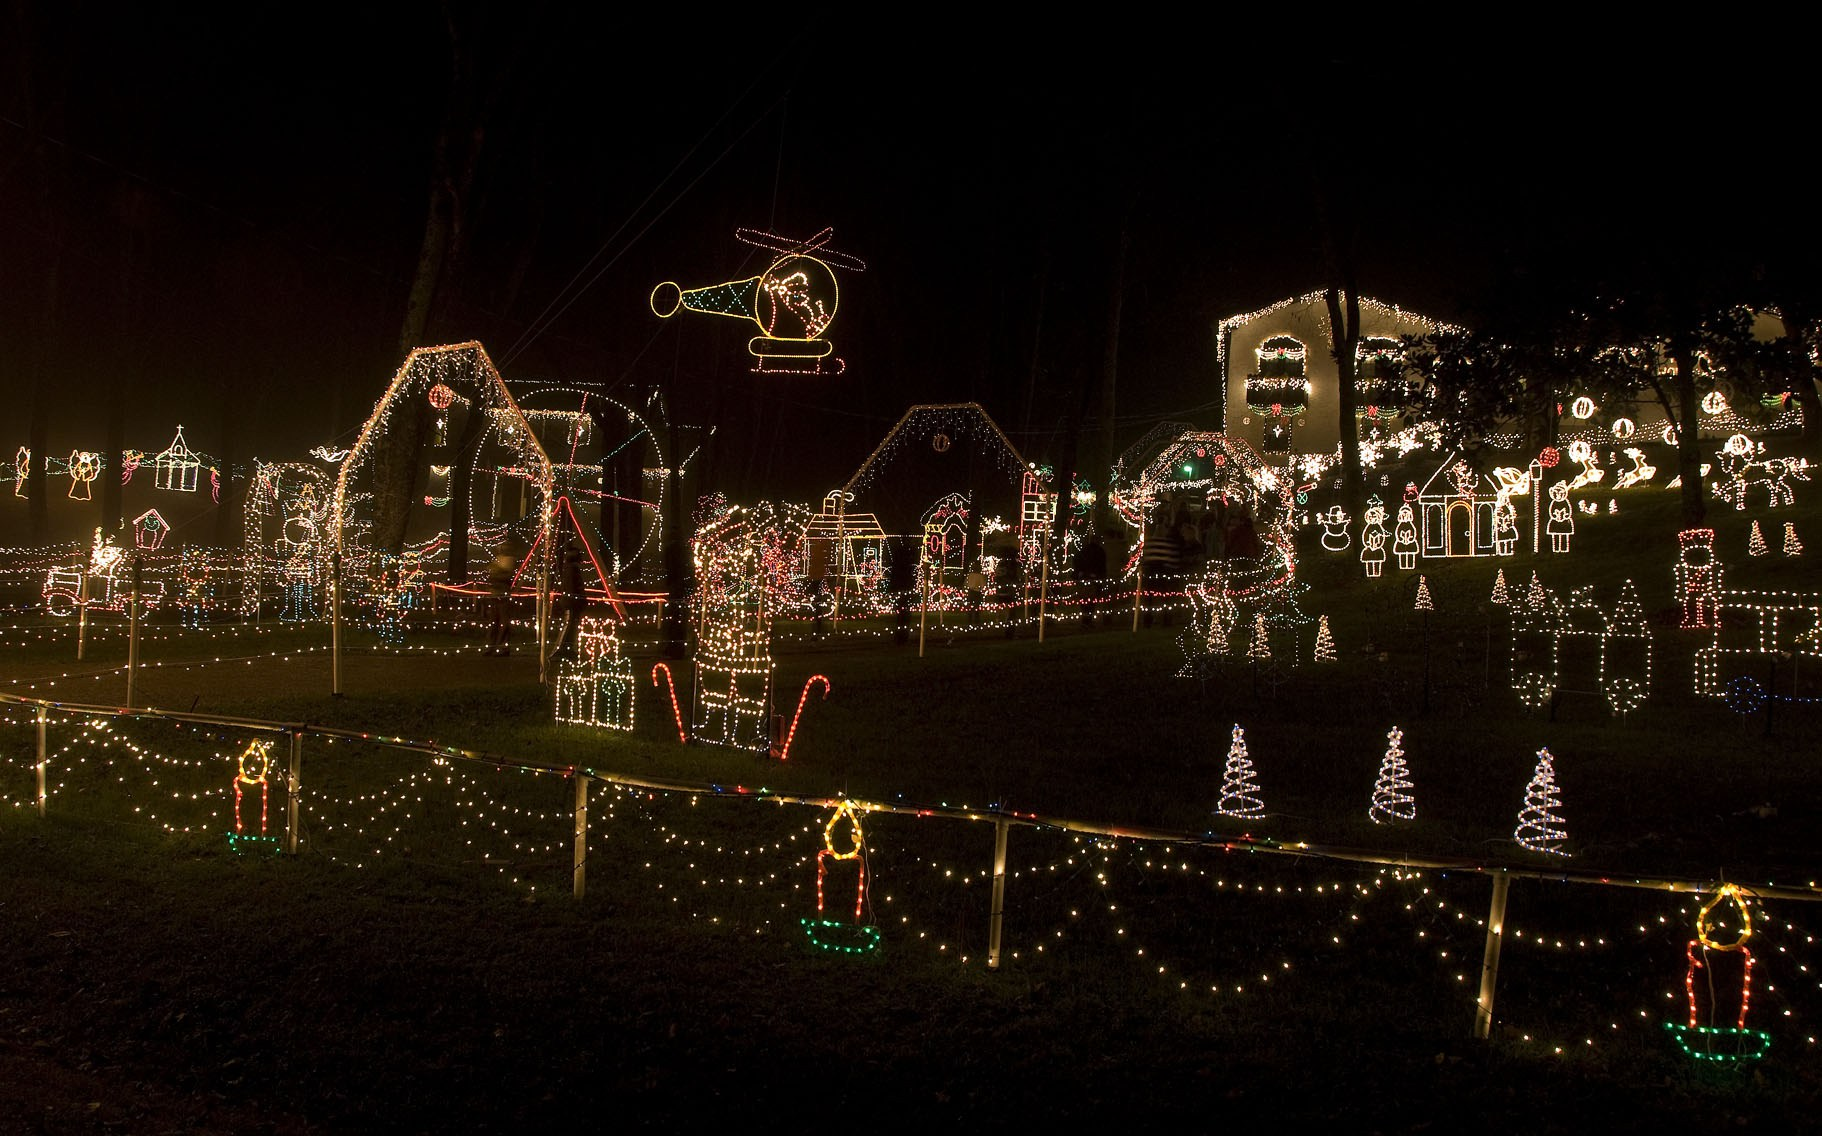 Must See Holiday Light Display in the Nashville Area